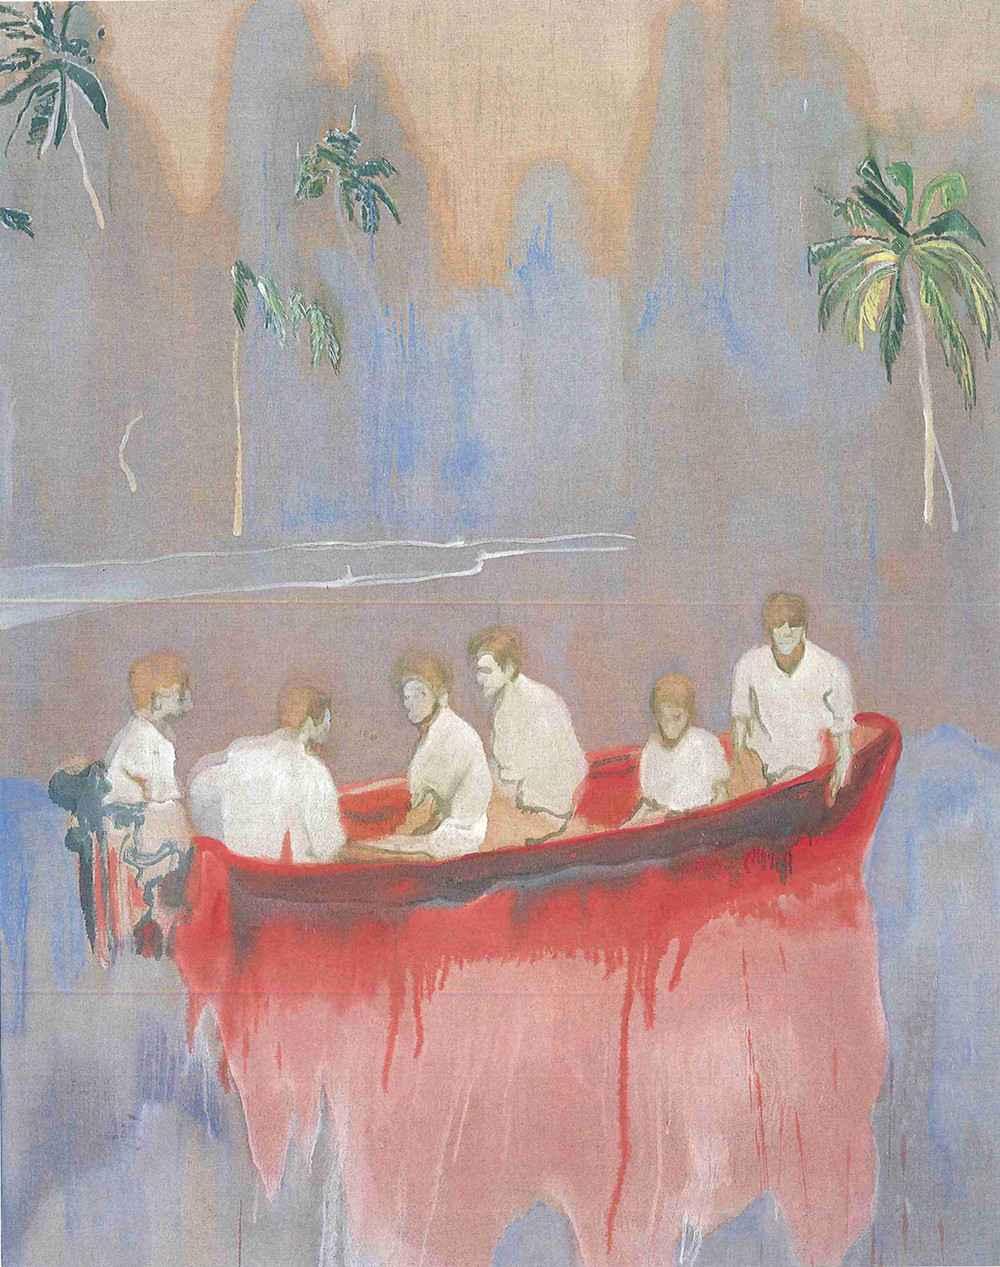 Figures in Red Boat (Imaginary Boys), huile sur toile (250 x 200 cm)